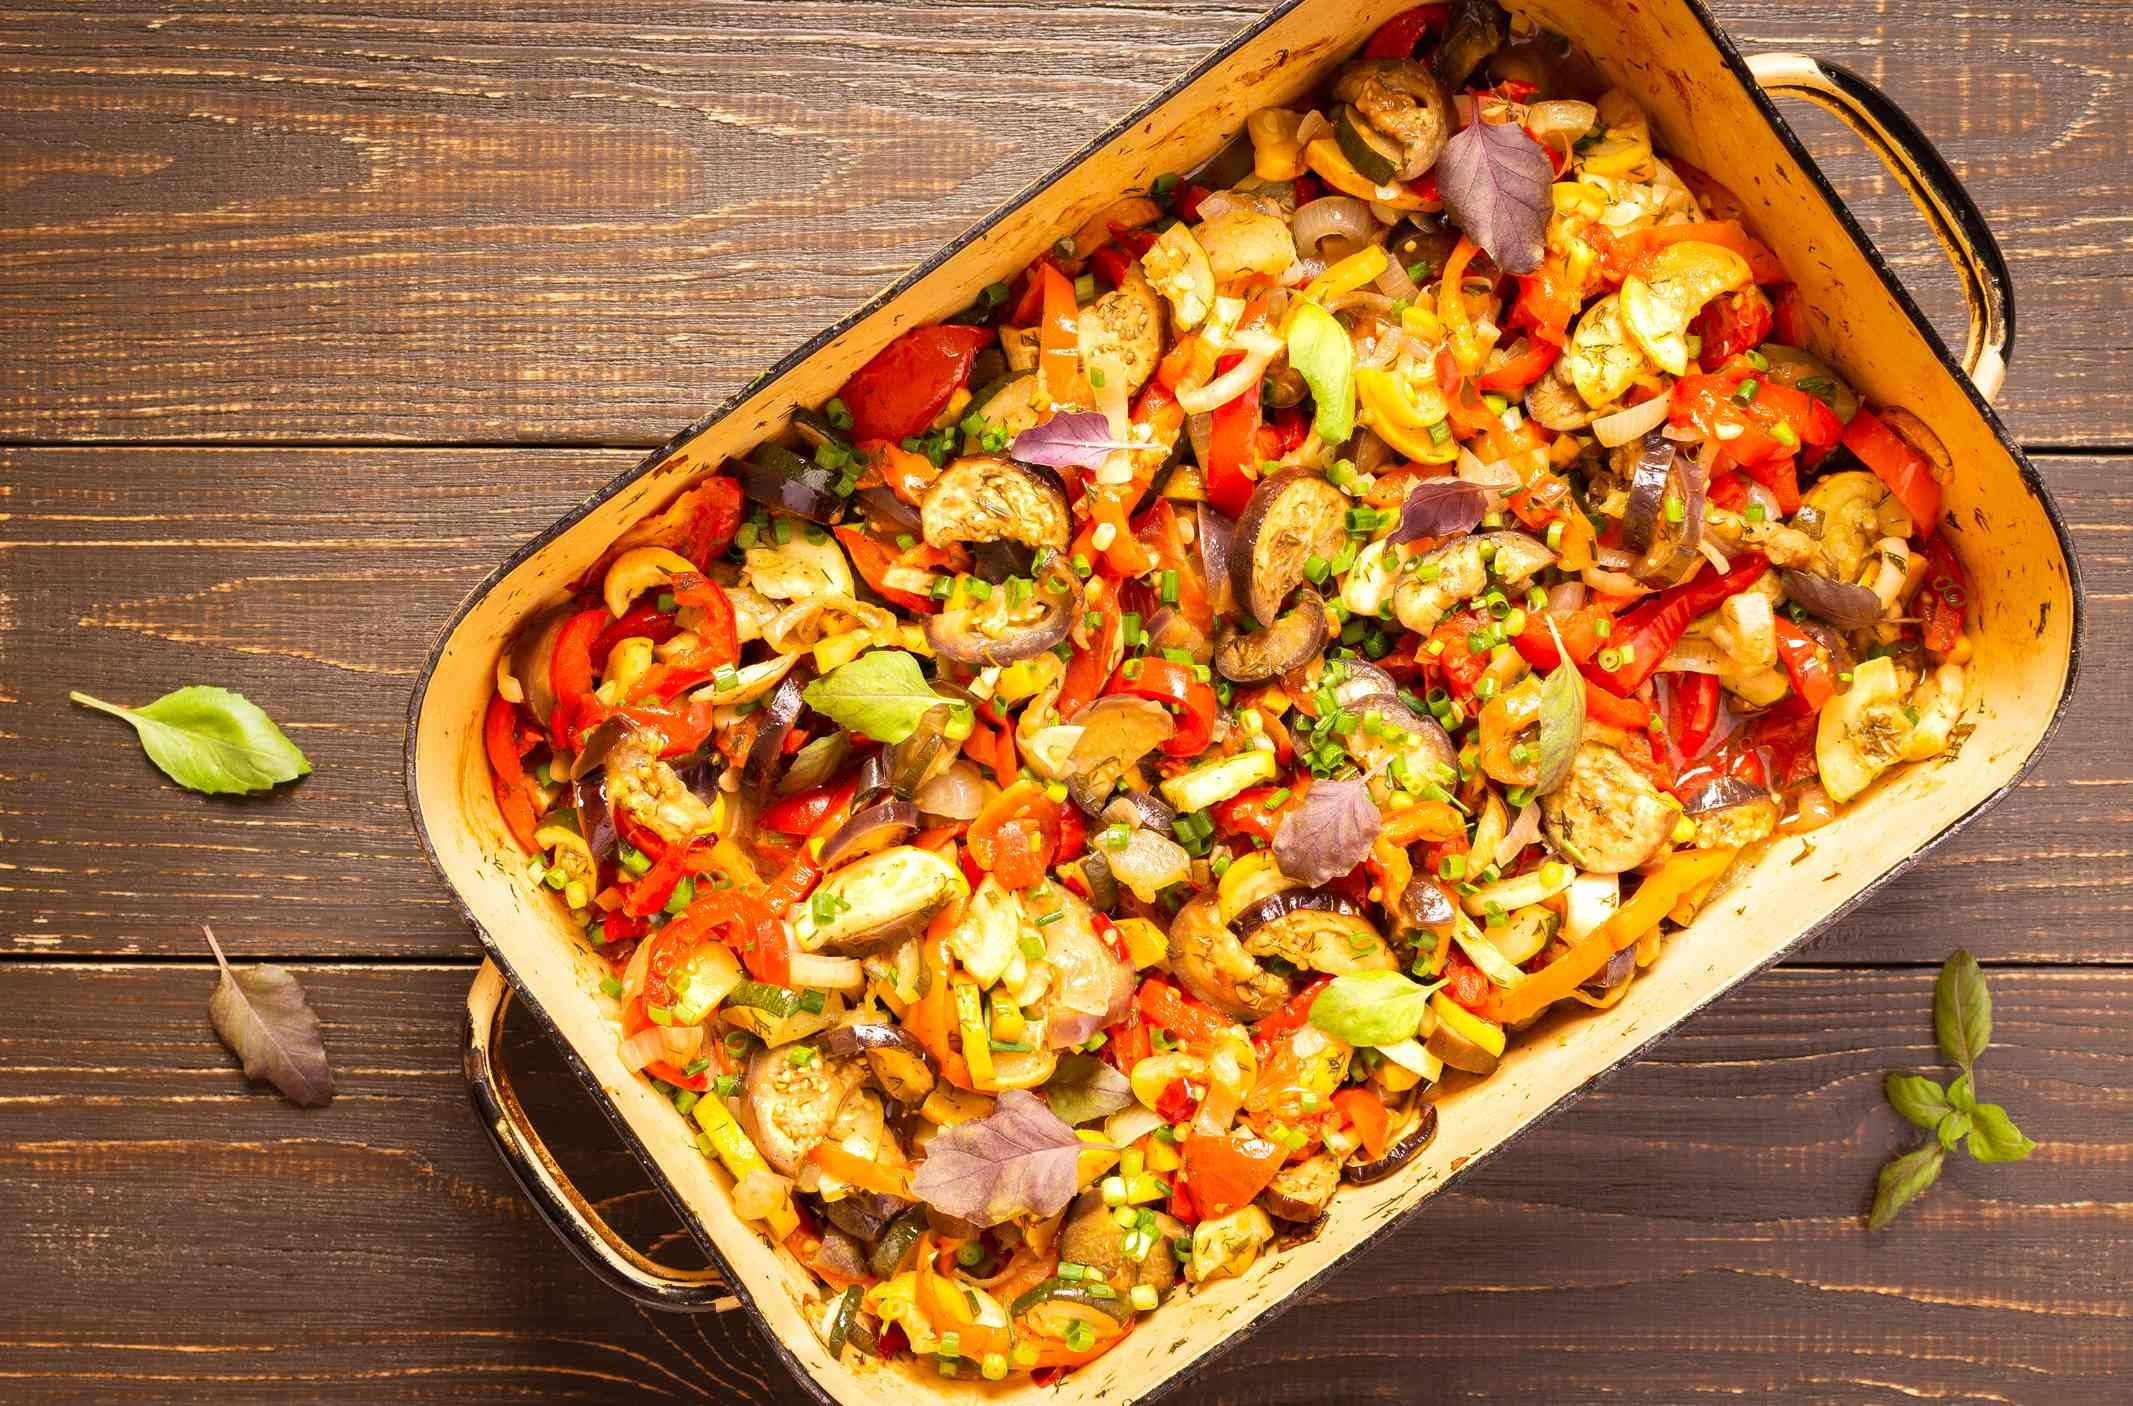 Stewed vegetables in a rectangular pot, eggplant with zucchini and tomatoes, sweet and hot peppers and spices,